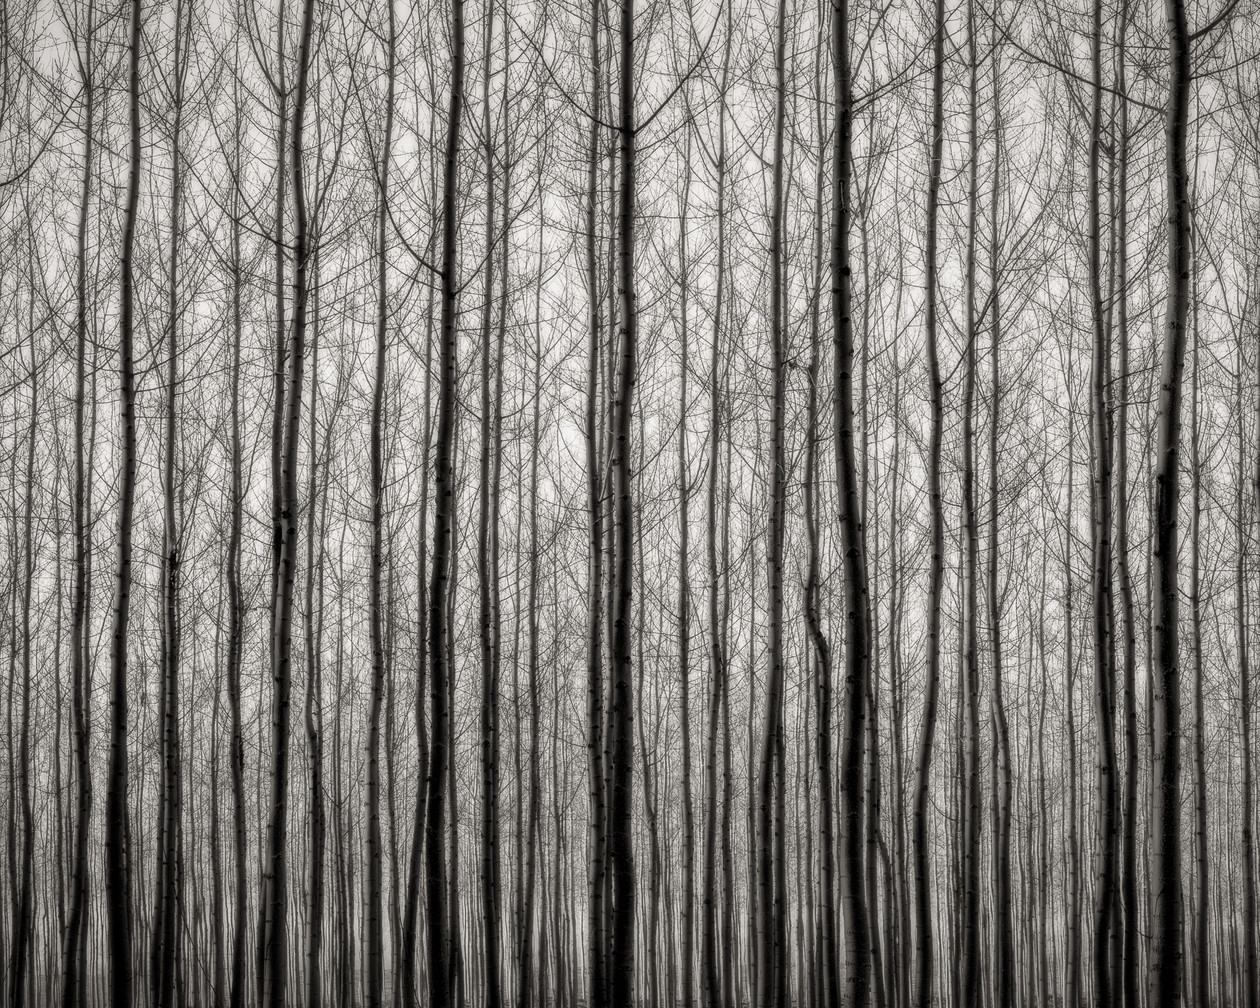 Early Evening Forest (2016) by Jeffrey Conley